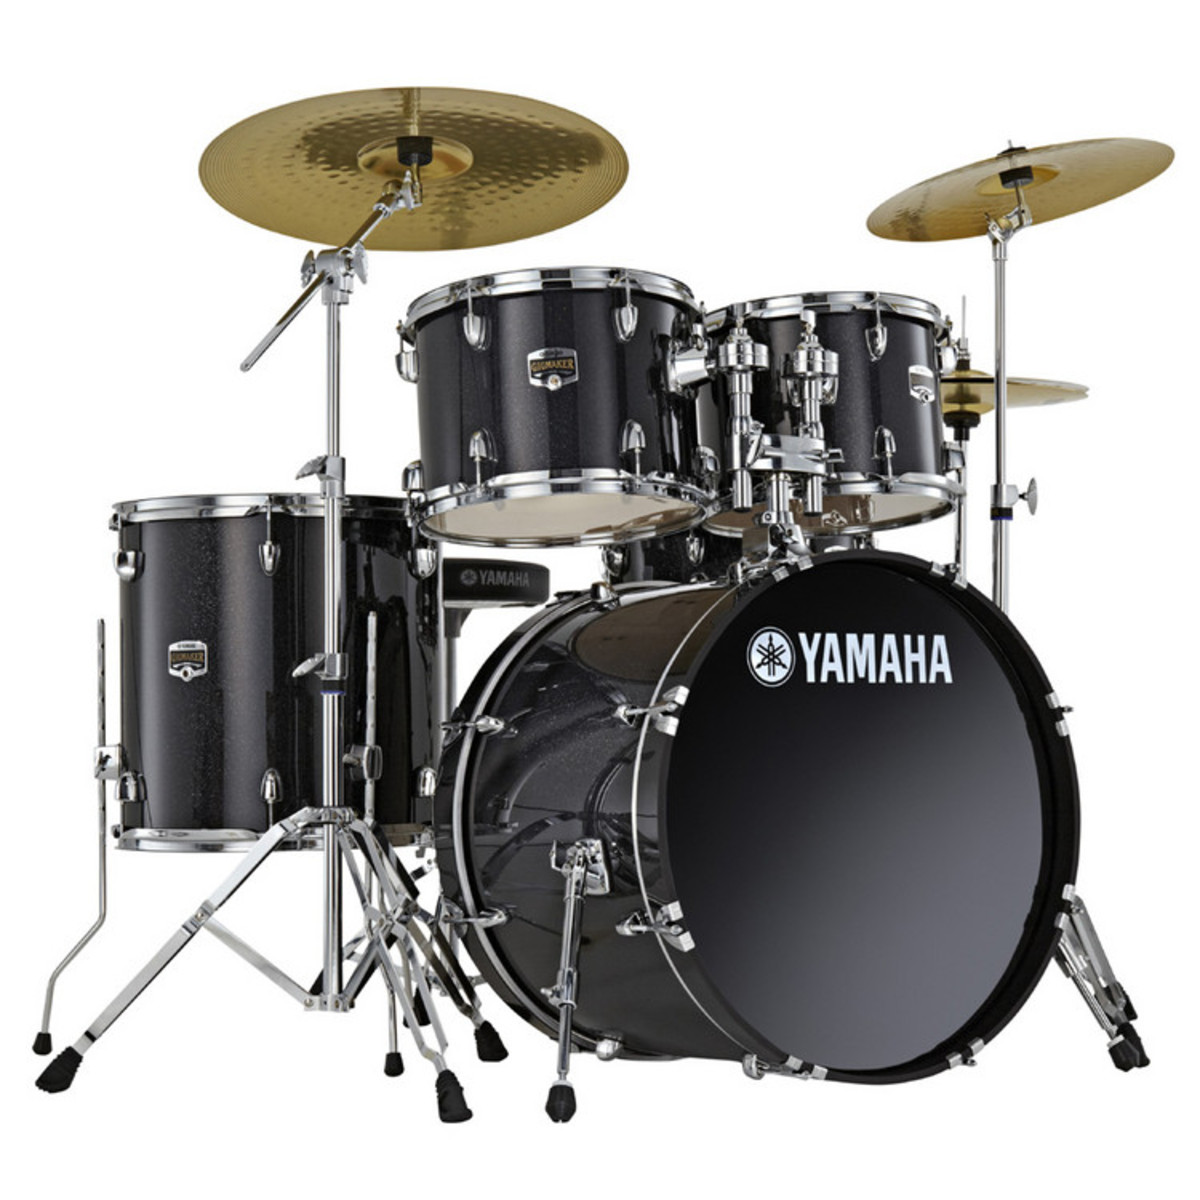 Yamaha Drum Kit : yamaha gigmaker drum kit 22 rock black glitter at ~ Vivirlamusica.com Haus und Dekorationen